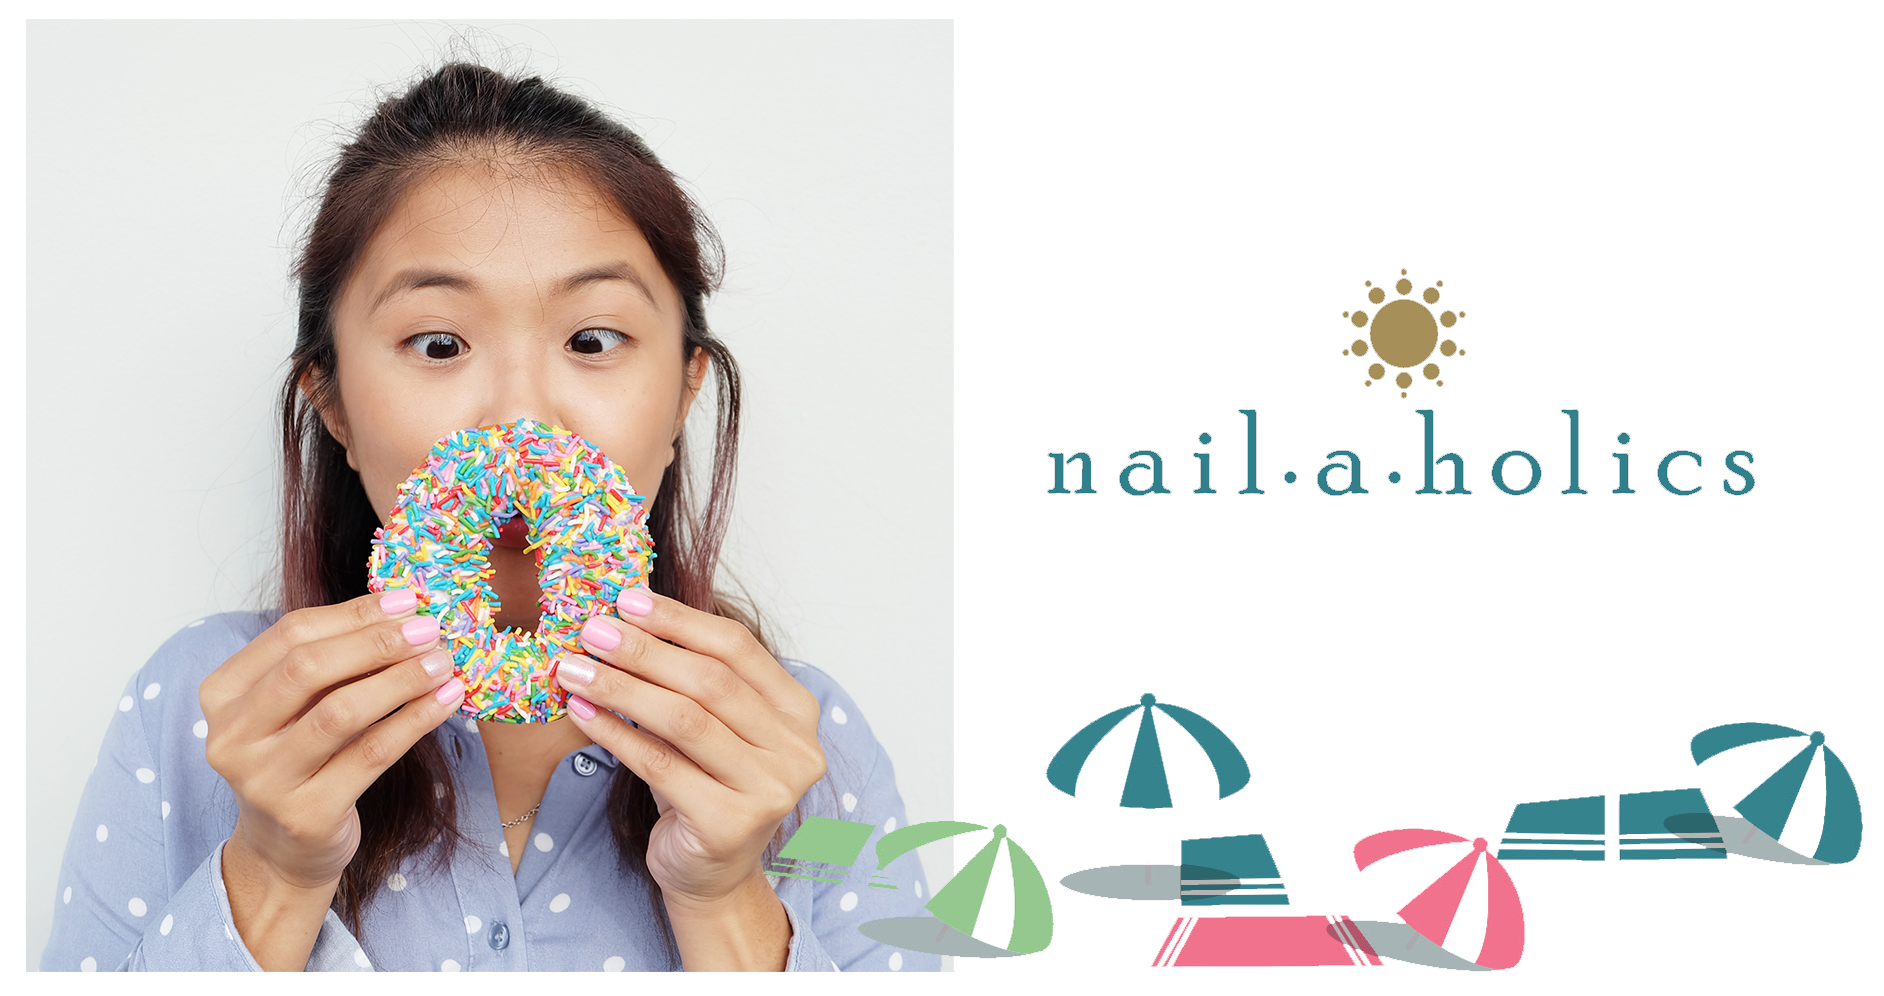 5 Things You Should Know Before Getting Gel Polish ft. Nailaholics Nail Salon & Spa